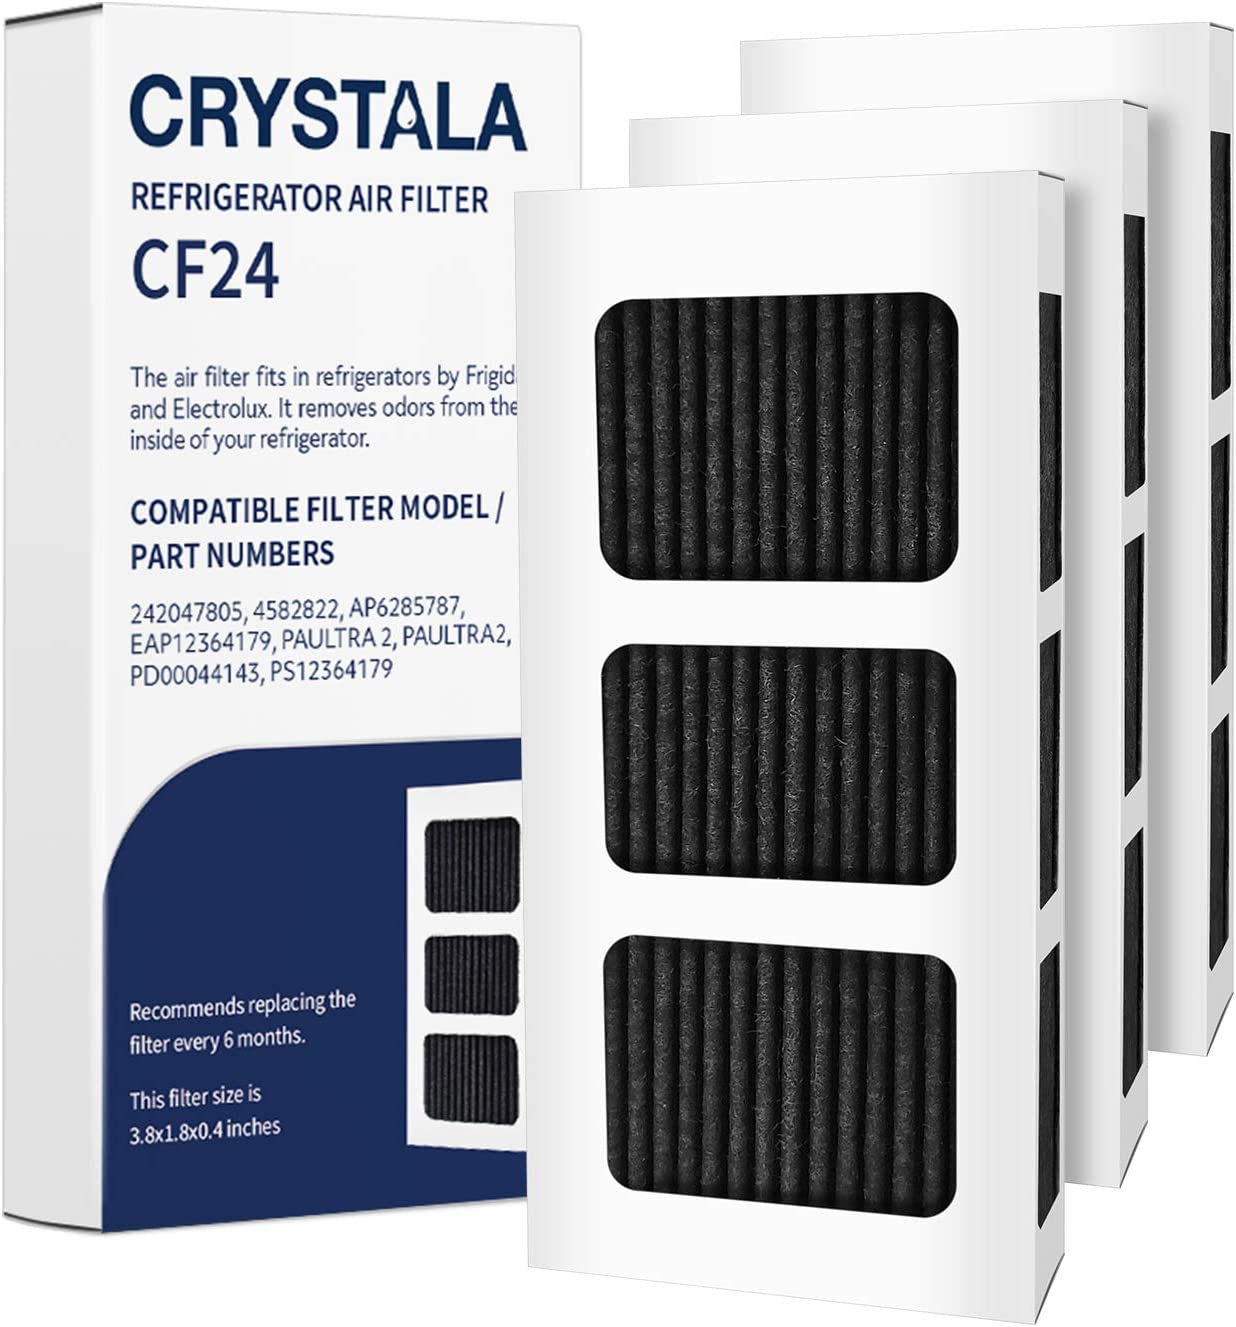 Crystala Filters PAULTRA2 Air Filter compatible with Frigidaire PureAir Ultra II Air Filter AP6285787, EAP12364179 Refrigerator Air Filters (3 Pack)